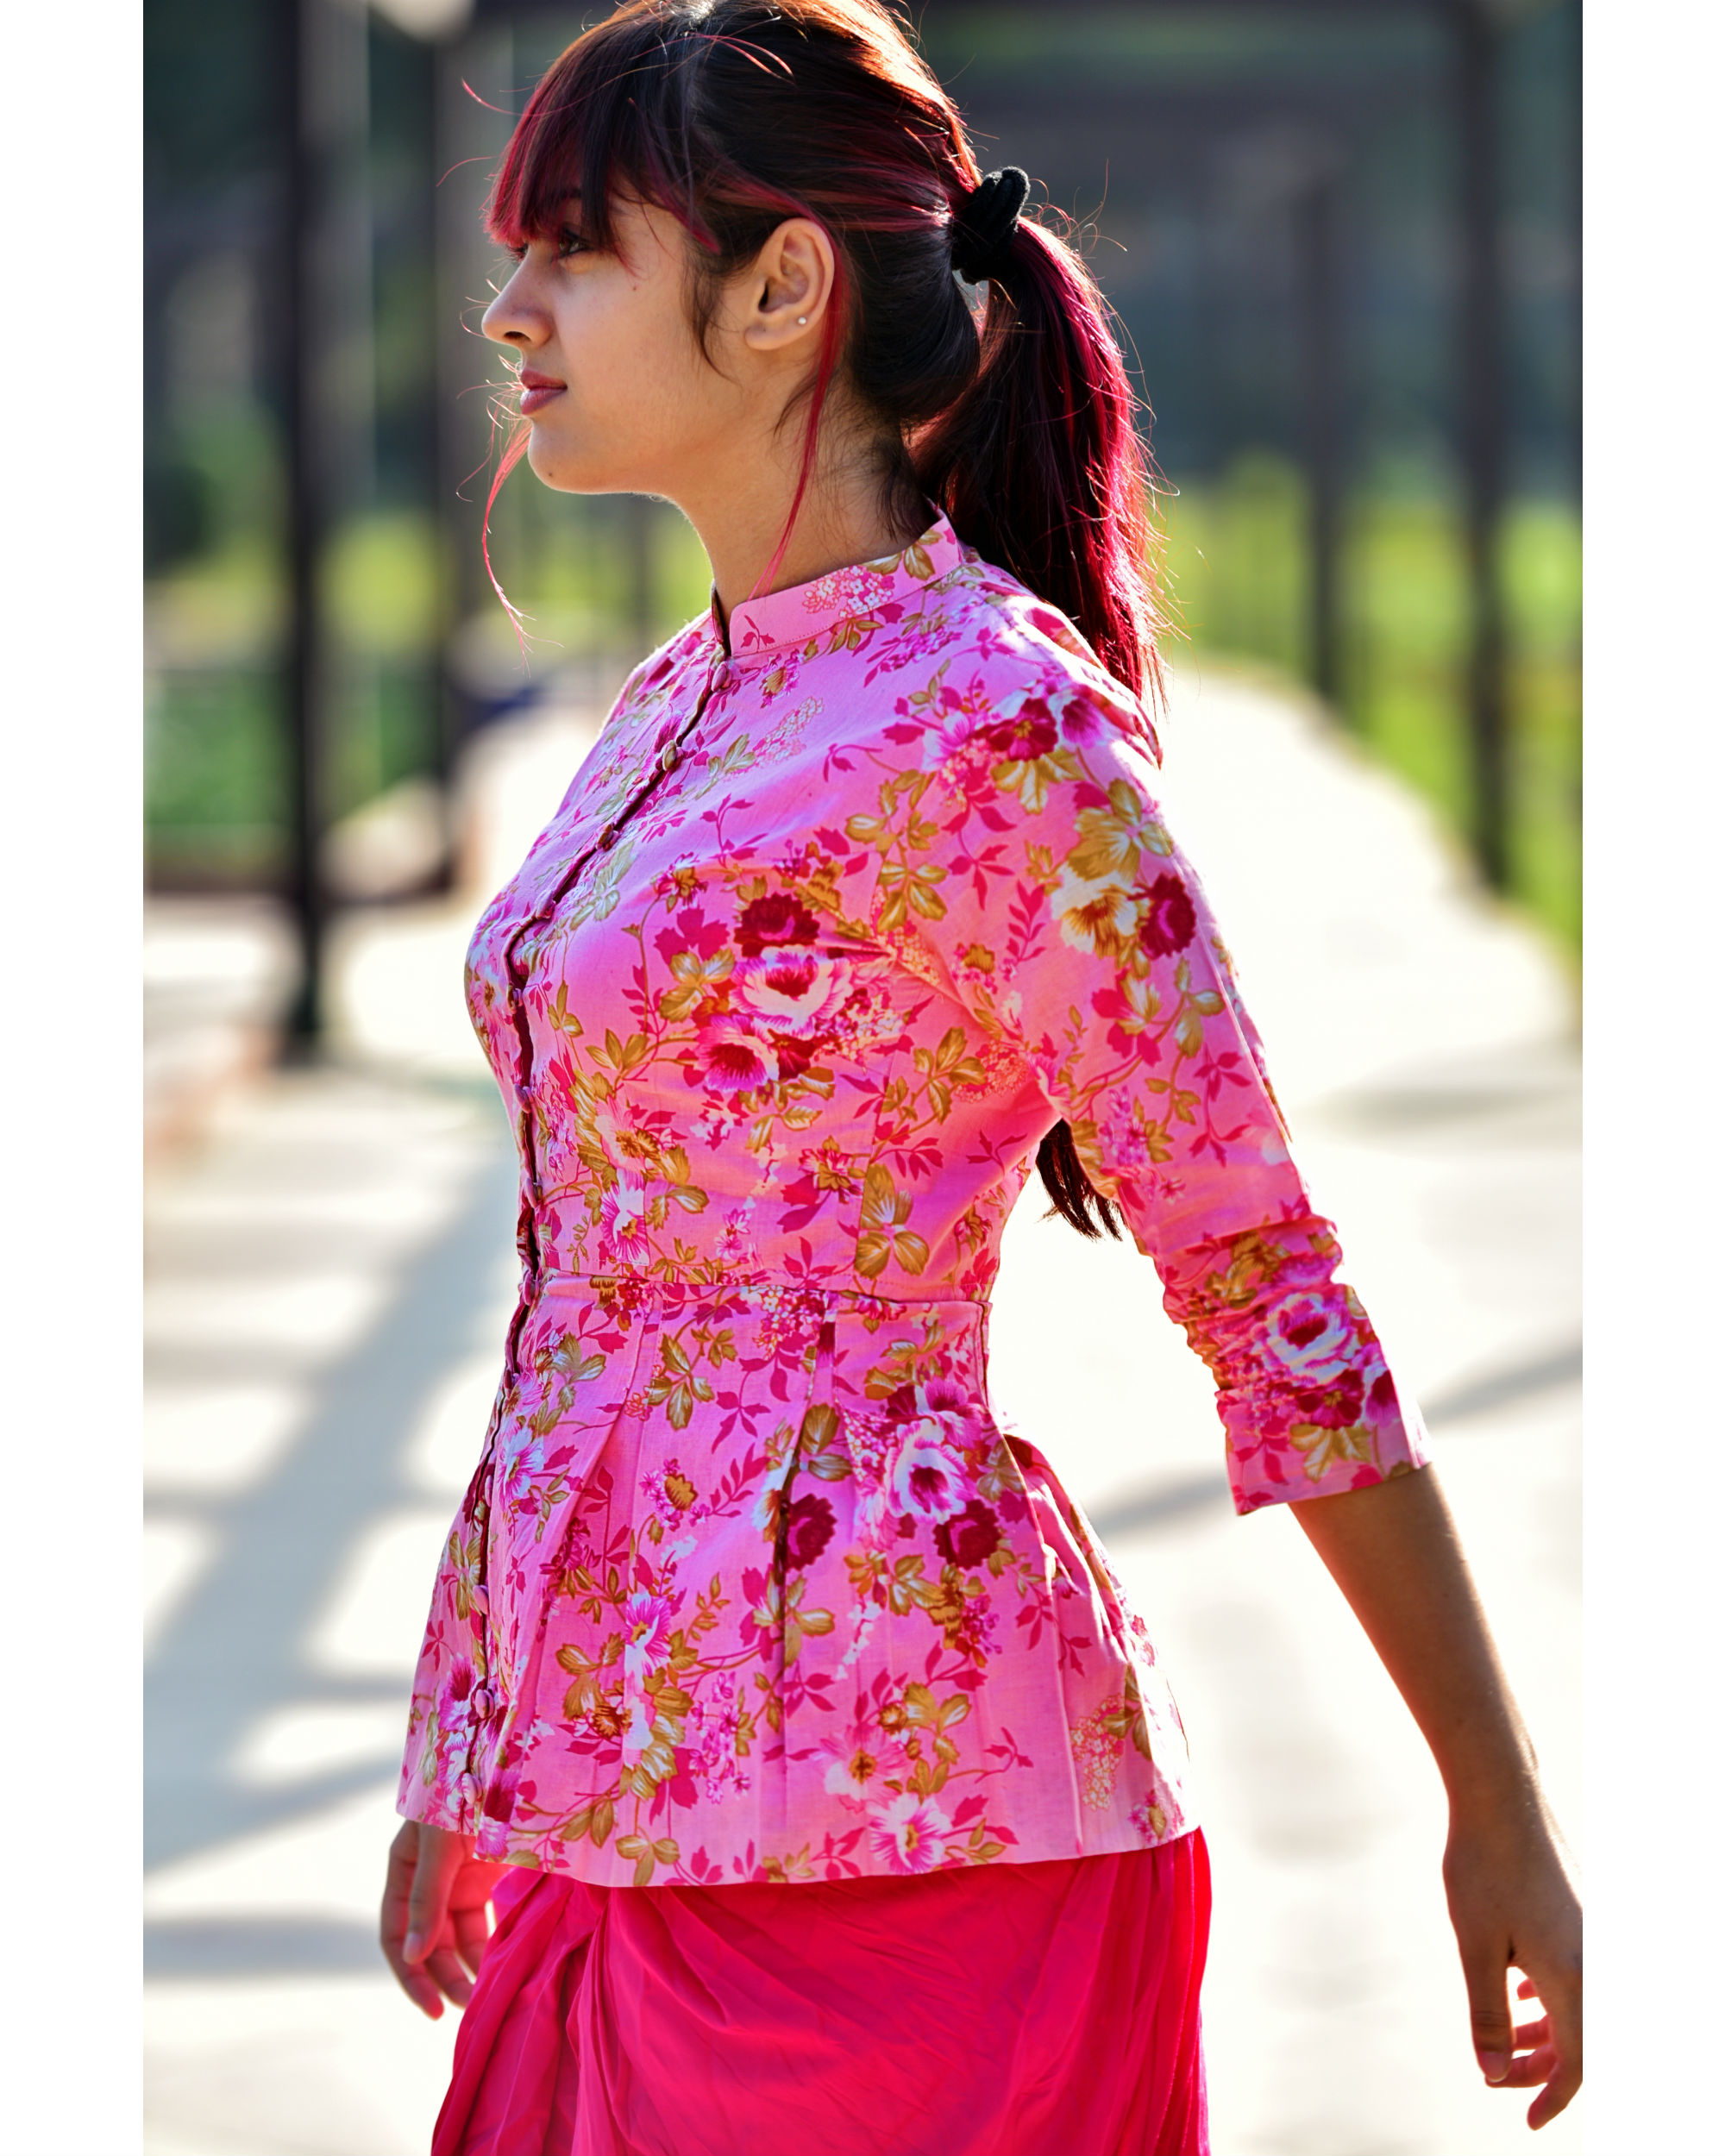 Pink Floral Peplum Top By Desi Doree The Secret Label